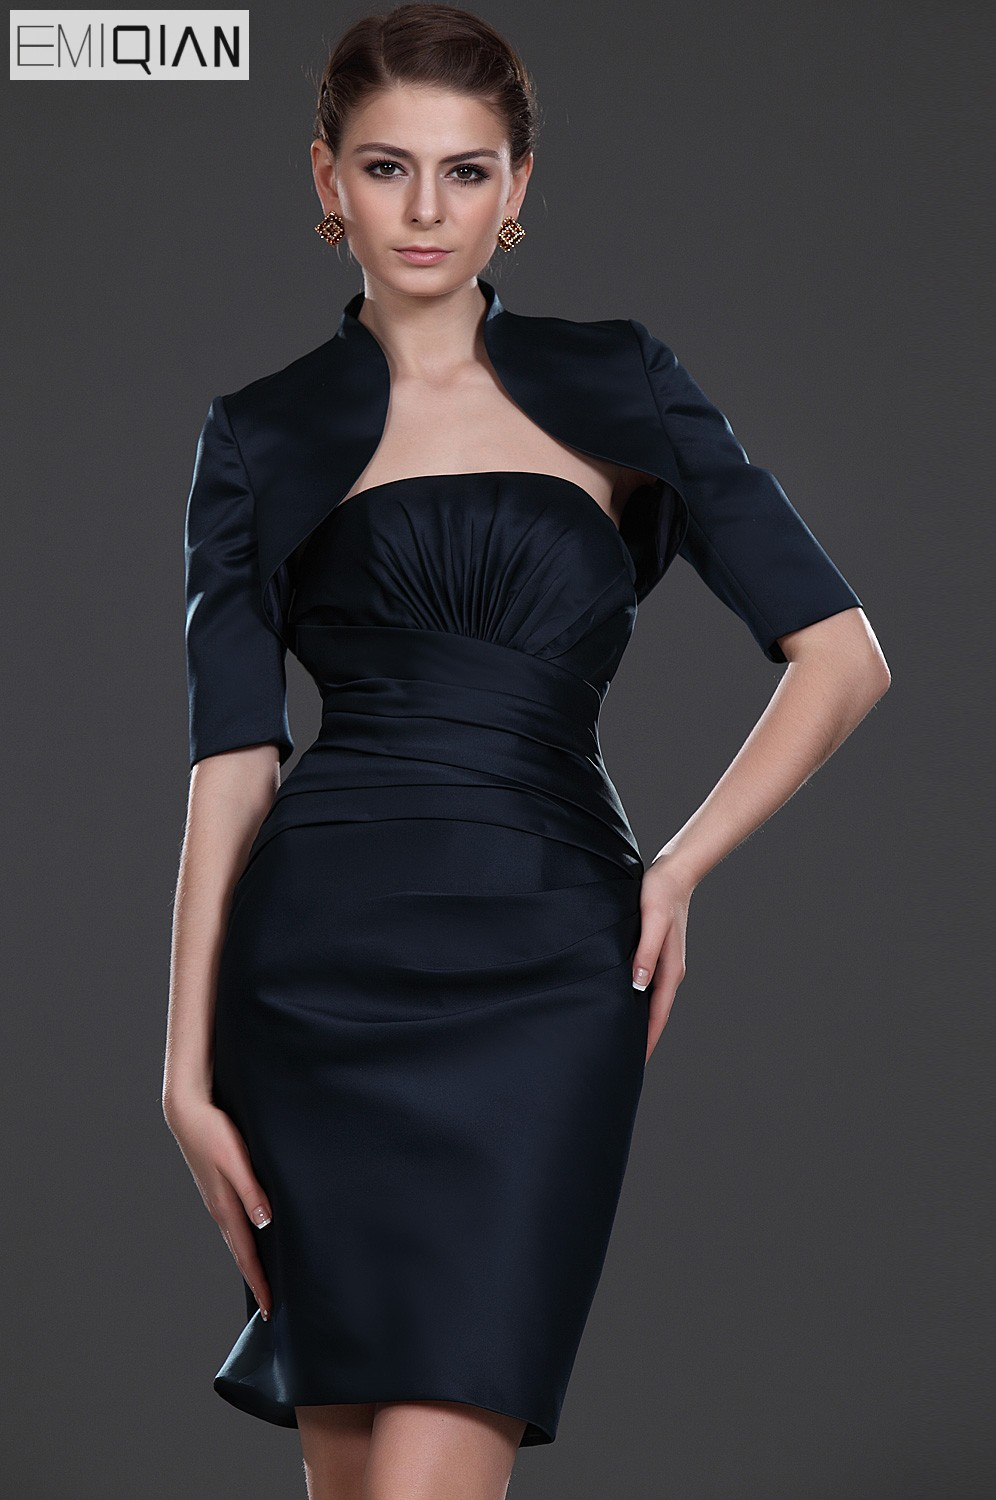 Formal Wedding Party Dress Sheath Sleeveless knee Length Black Satin Short Mother of the Bride Dress with Half Sleeve Jacket